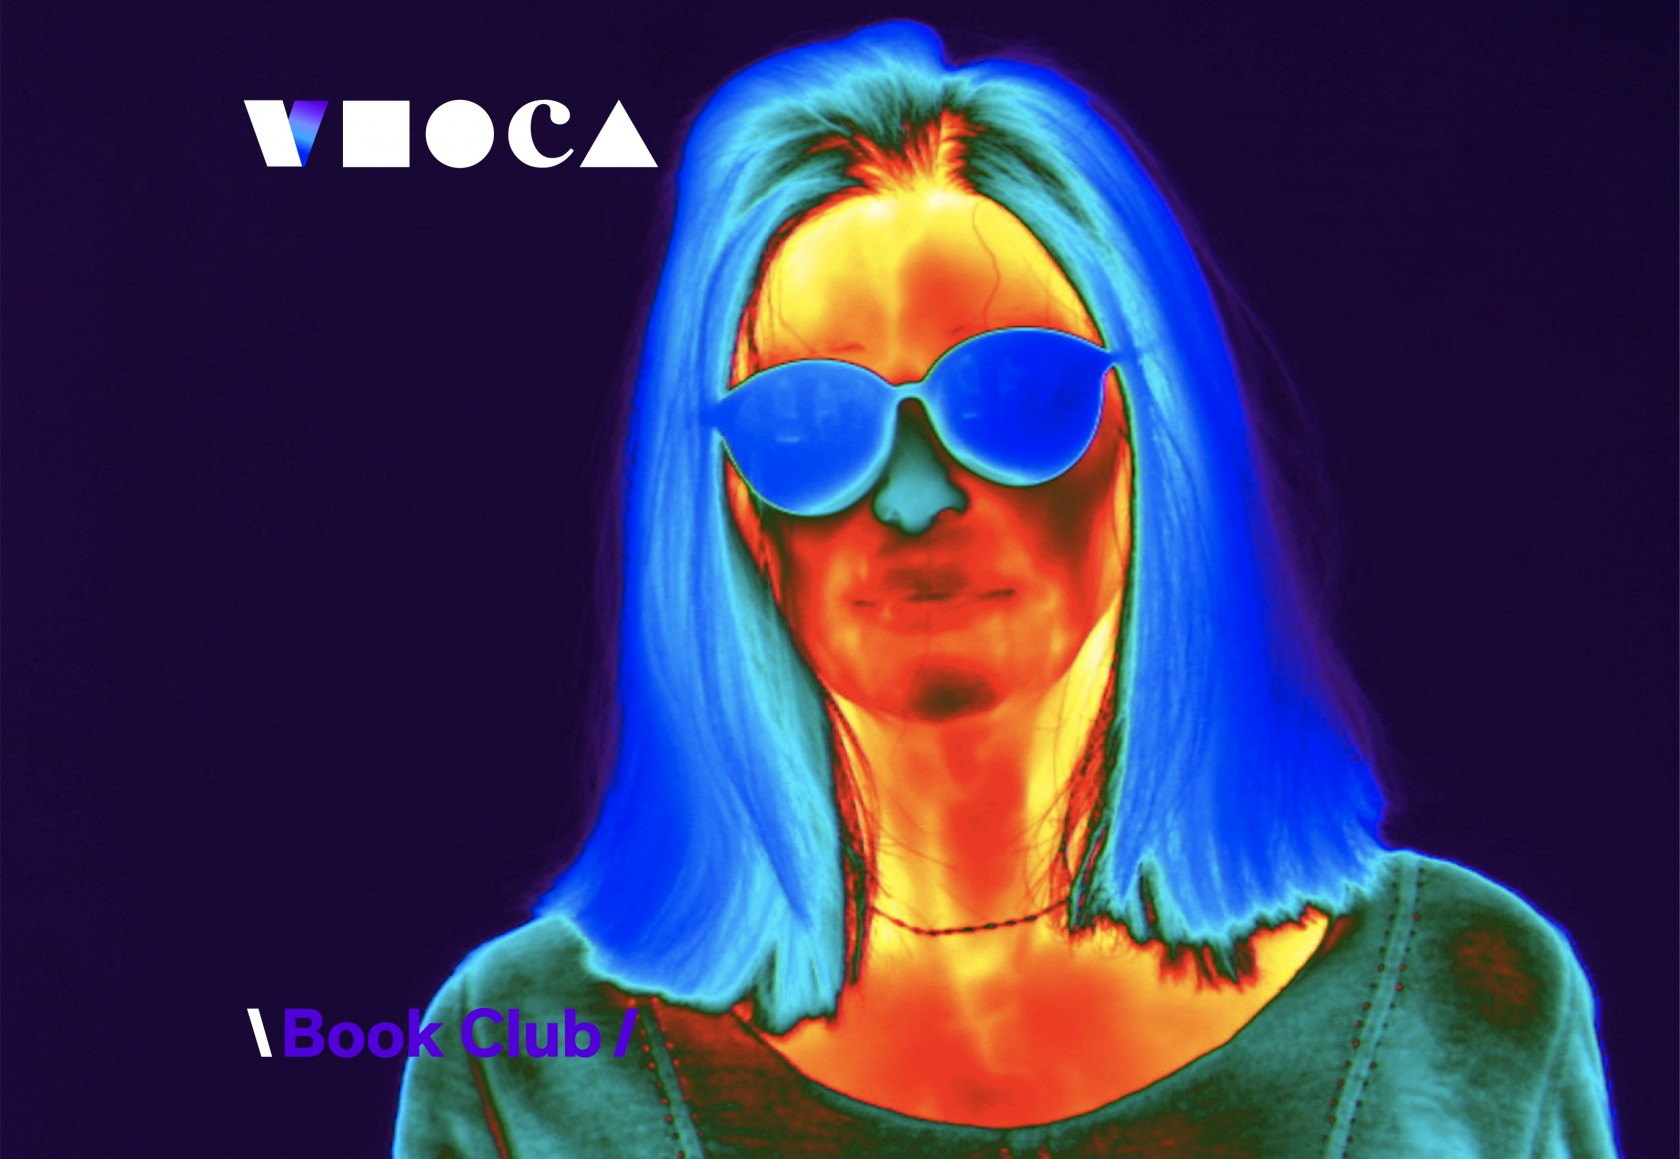 Virtual MOCA: Book Club